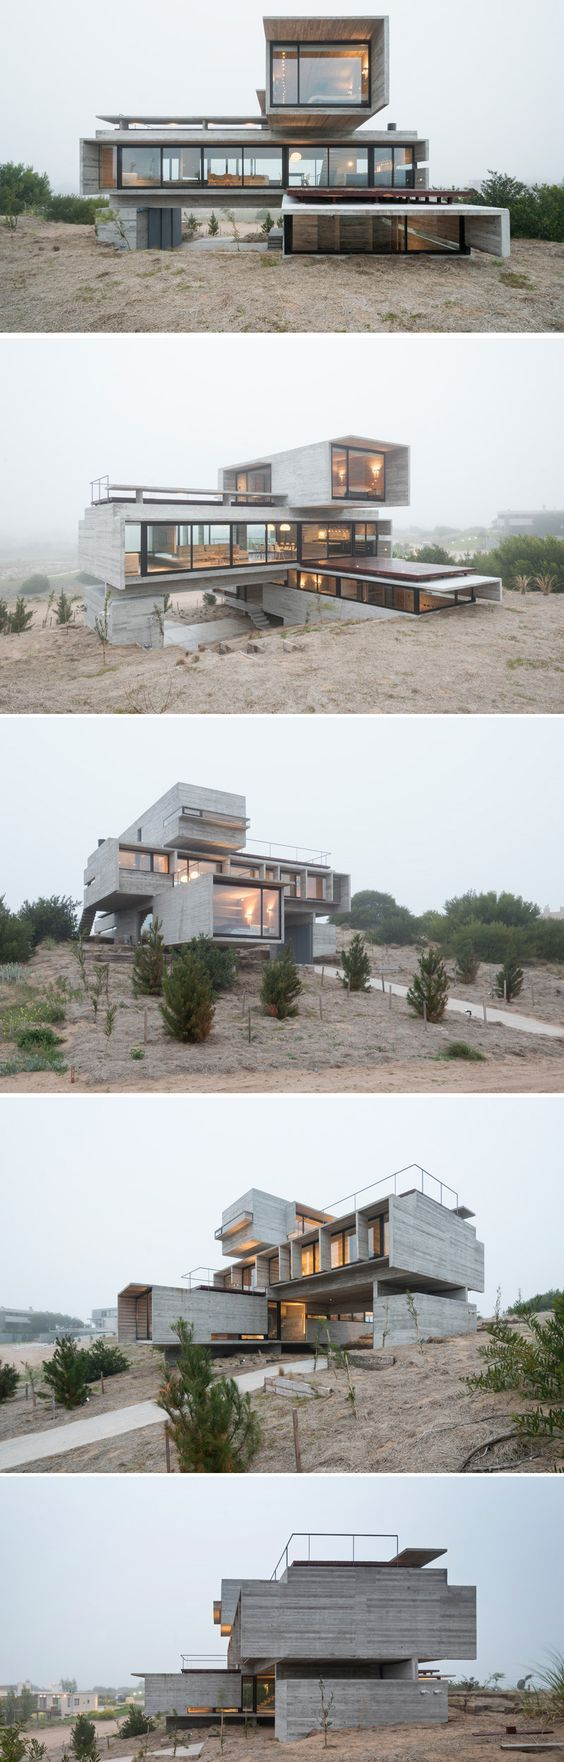 How To Build Your Own Shipping Container HomeRobert Pacileo Jr.